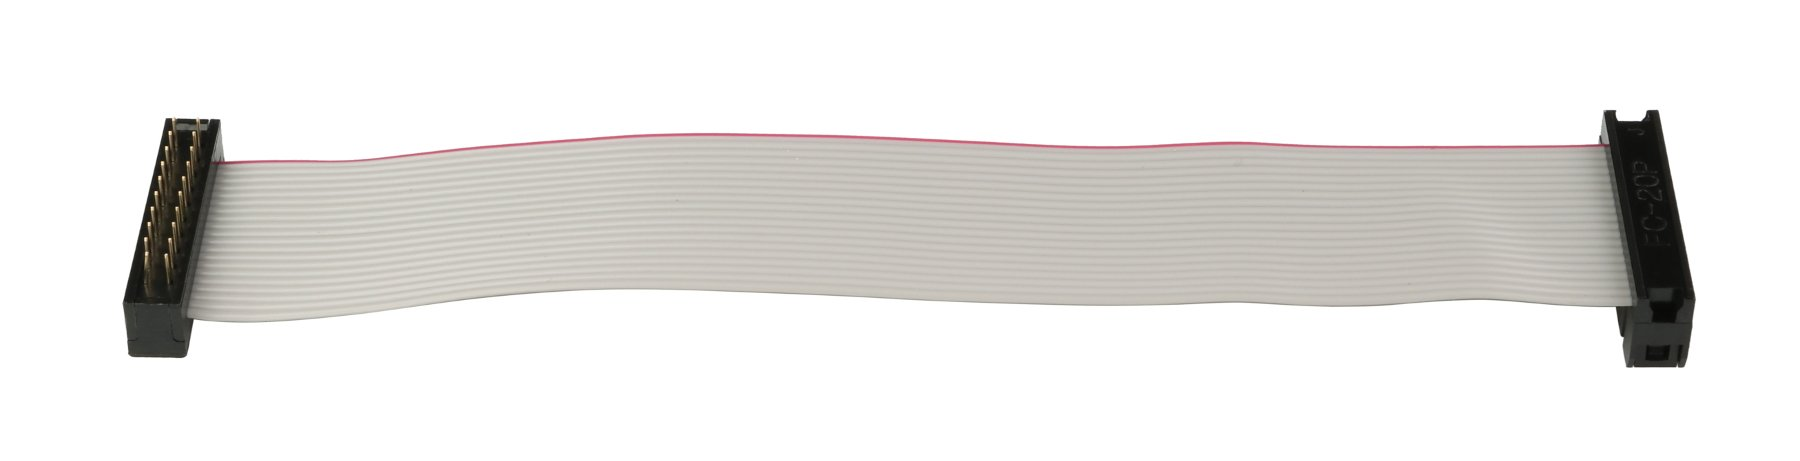 20-Pin Ribbon Cable for XONE:DX